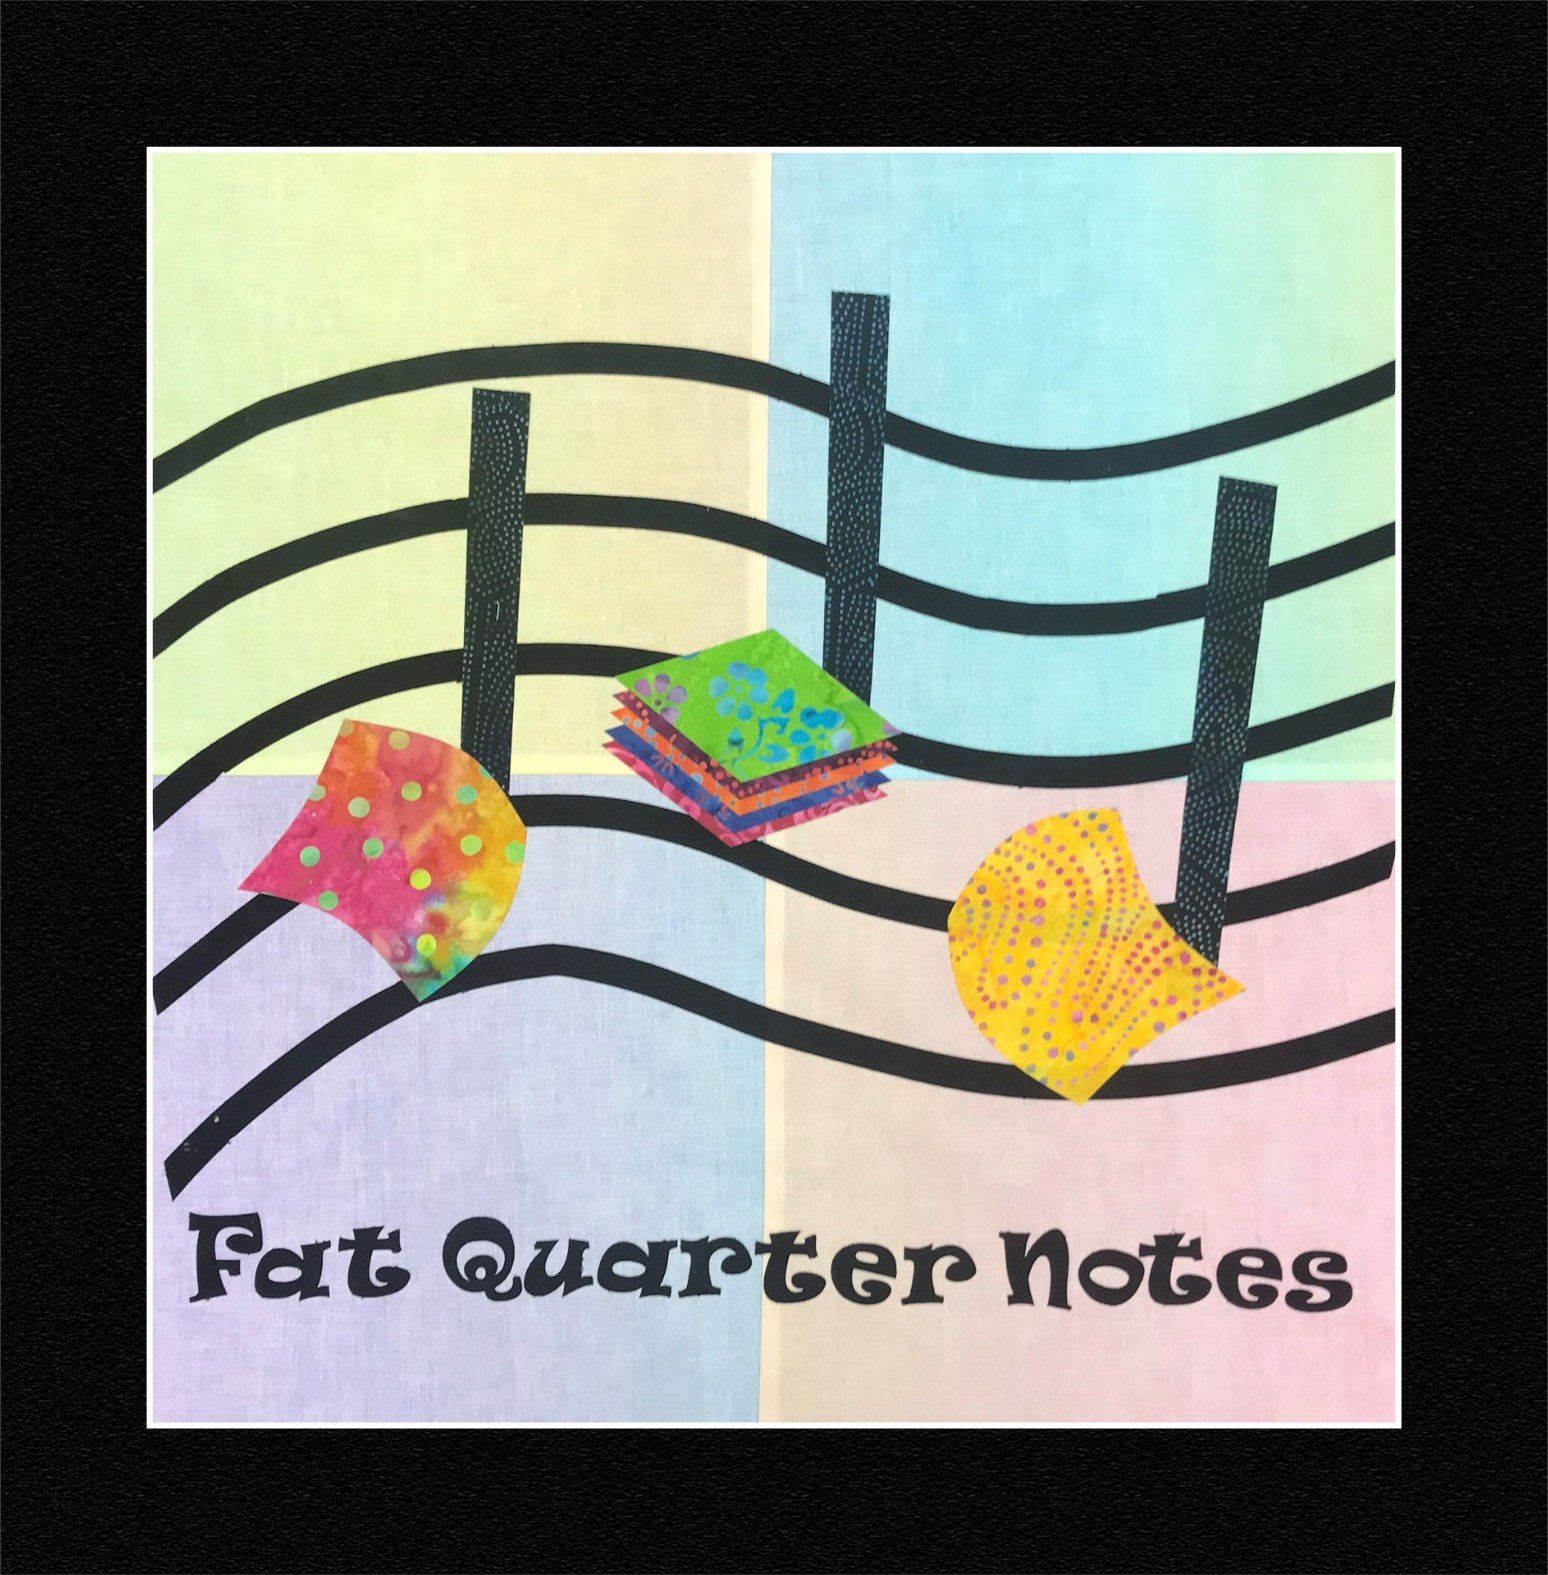 Fat Quarter Notes Kit